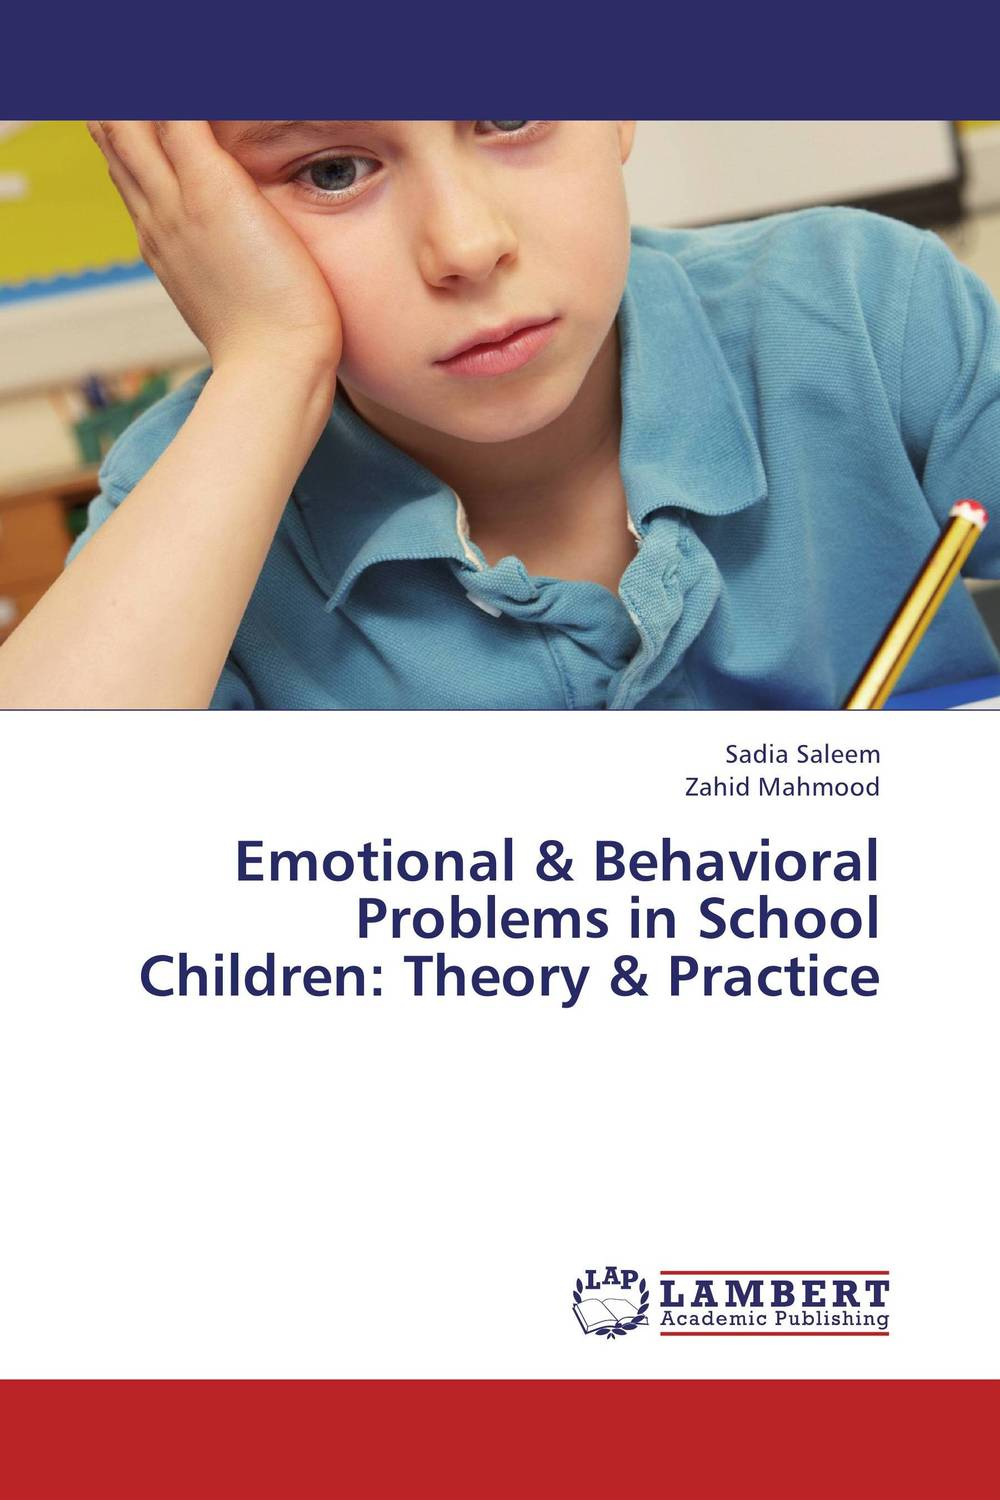 Emotional & Behavioral Problems in School Children: Theory & Practice the role of evaluation as a mechanism for advancing principal practice